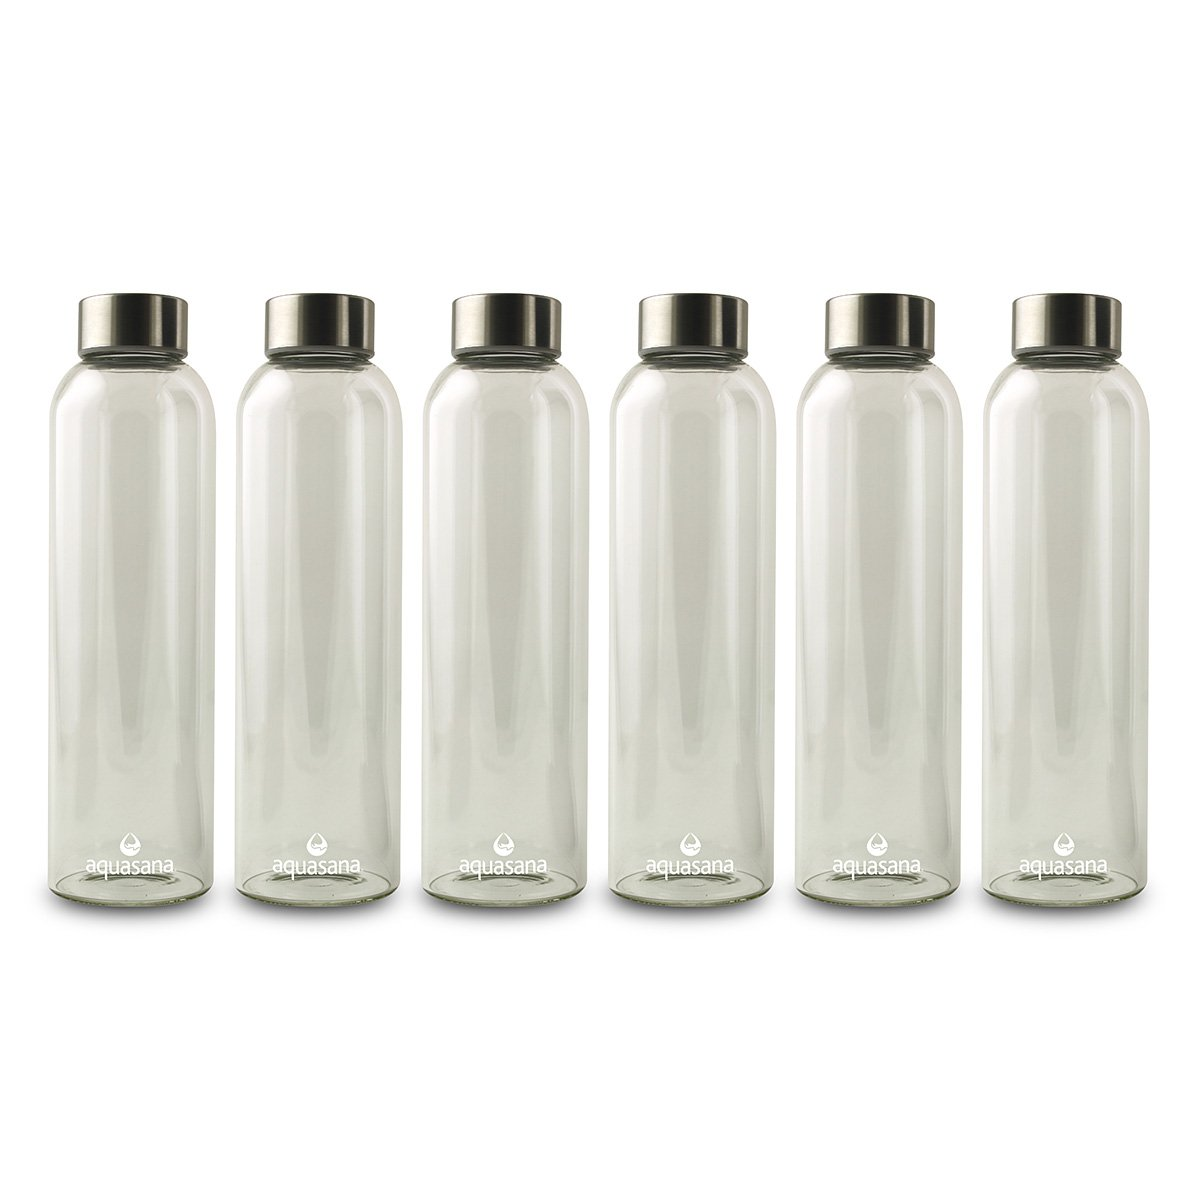 Aquasana Premium Borosilicate Glass Water Bottles and BPA Free Lid with Stainless Steel Cover, 550ml, 6-pack